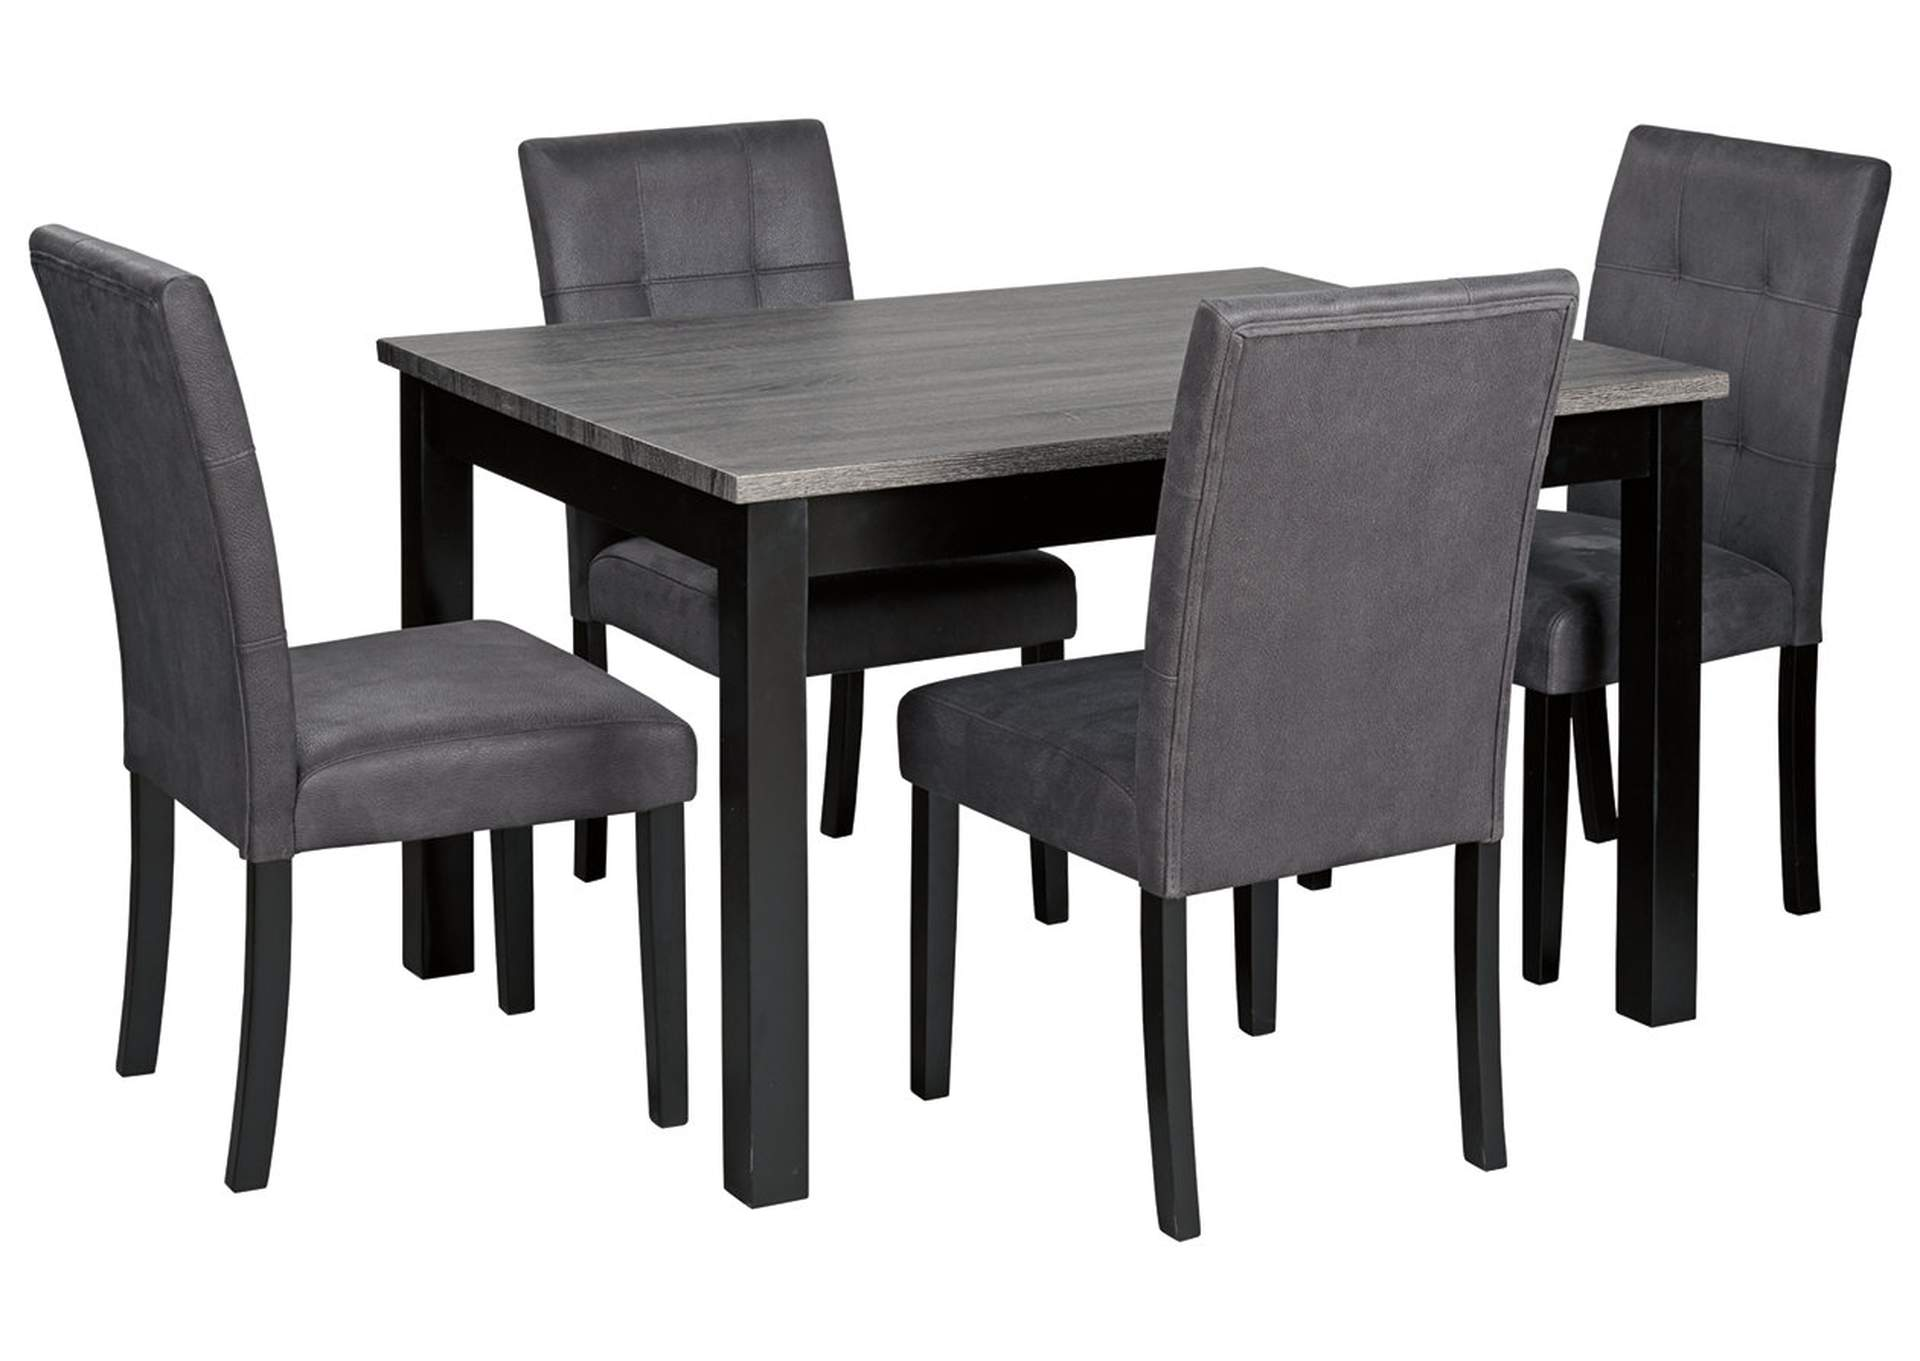 Garvine Two-tone Dining Room Table and Chairs (Set of 5),Signature Design By Ashley